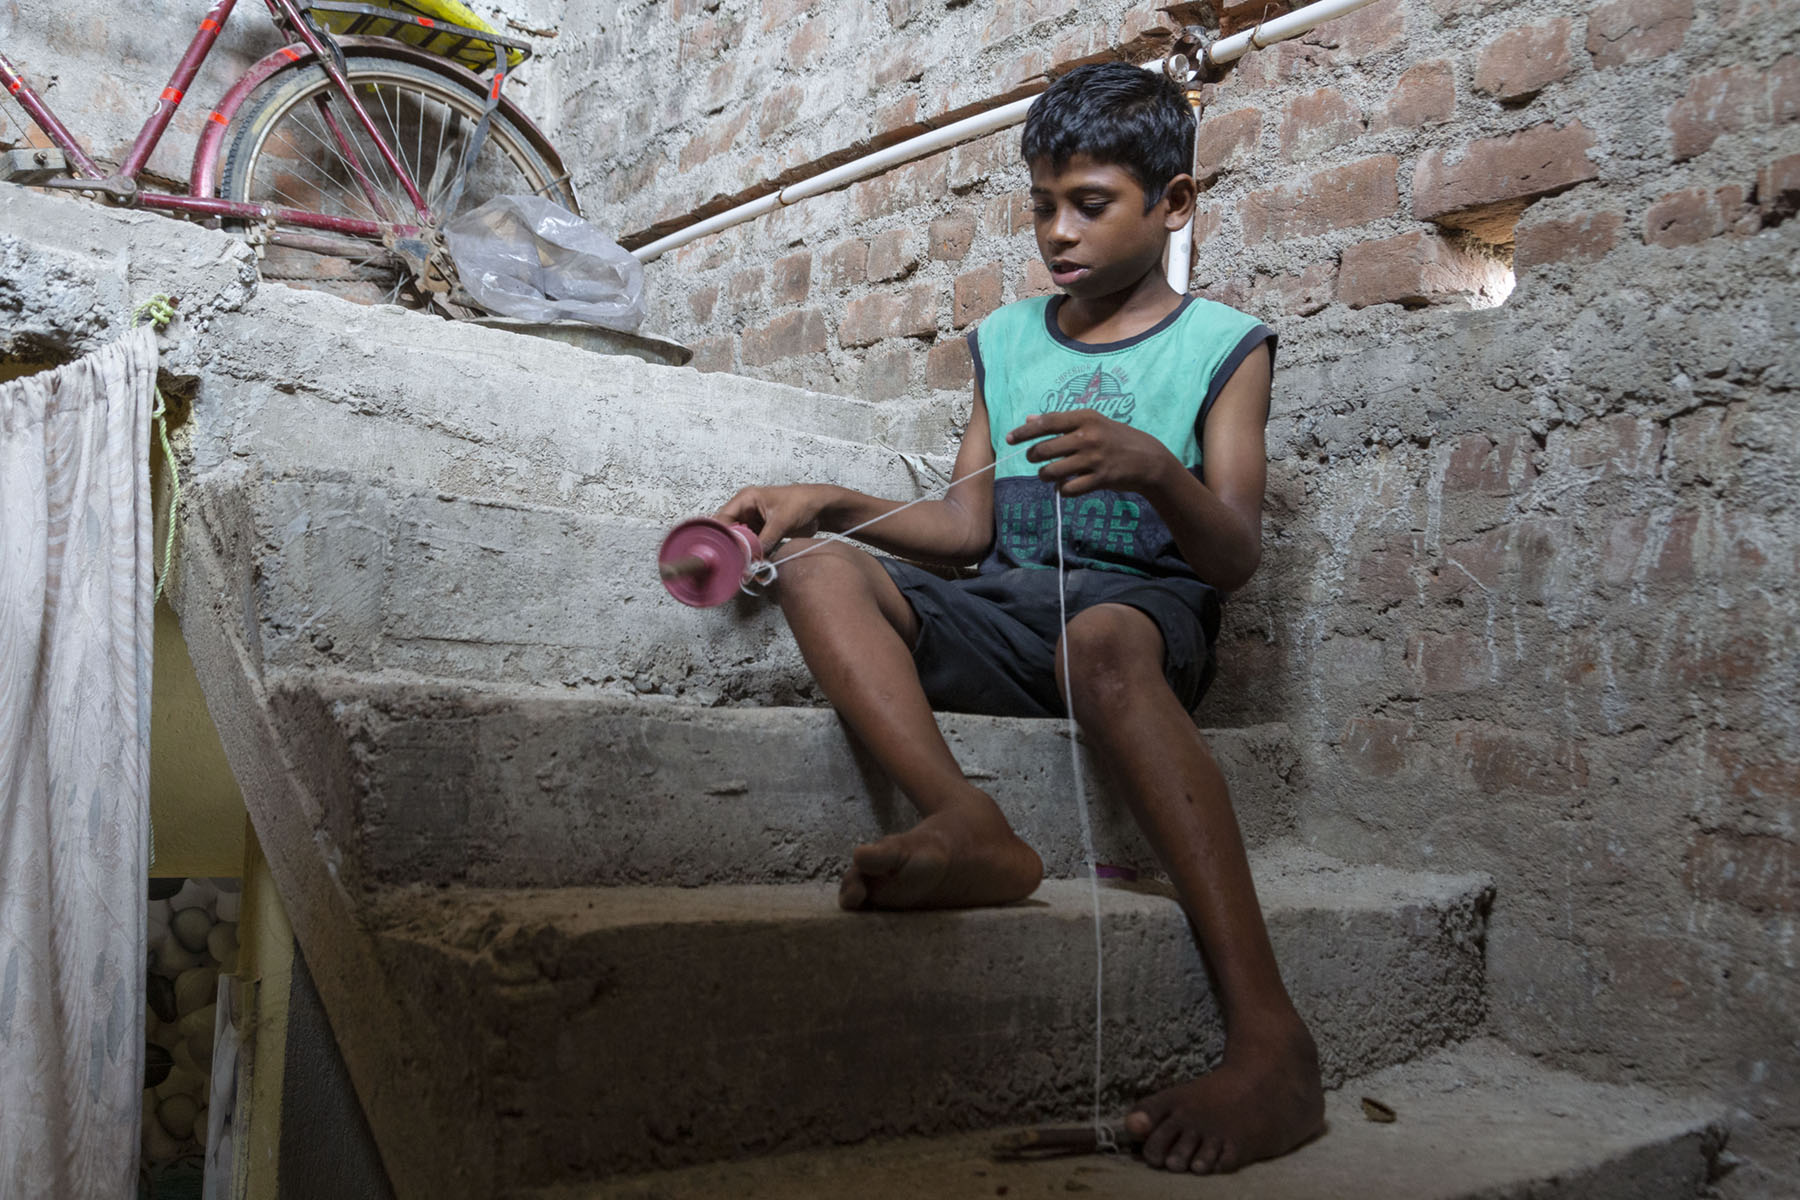 Aman, in blue sleeveless T-shirt and navy blue shorts, sits on a step of a rough concrete stairway. The wall next to it is also unfinished, with bricks and cement showing. Aman holds a plastic spool (used for kite flying) in his right hand and the spool's string with his left. The end of the string is tied to a wooden stick resting on the step below him.